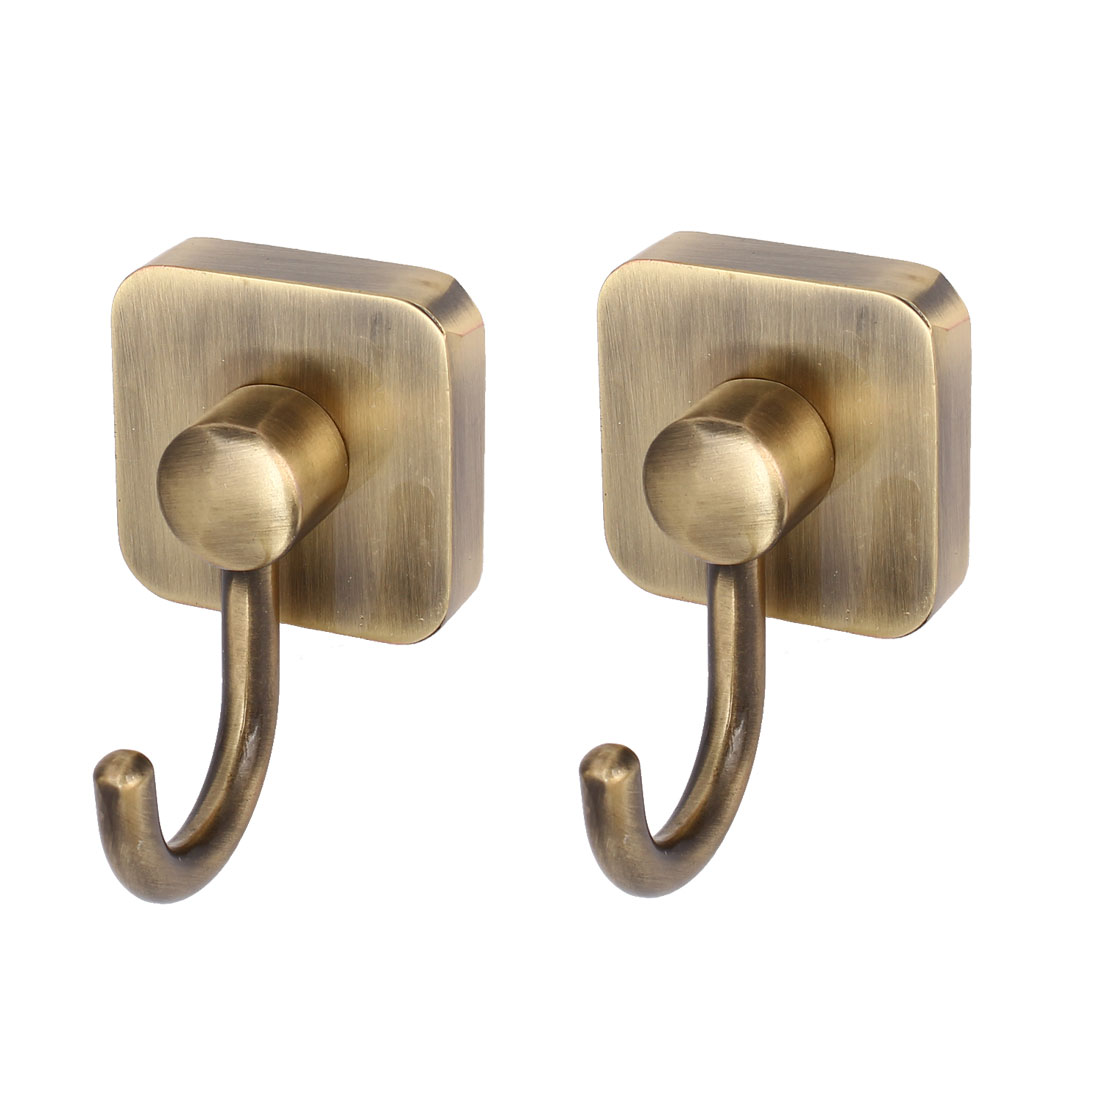 Bathroom Coat Scarf Single Hook Metal Wall Hanger Bronze Tone 2pcs